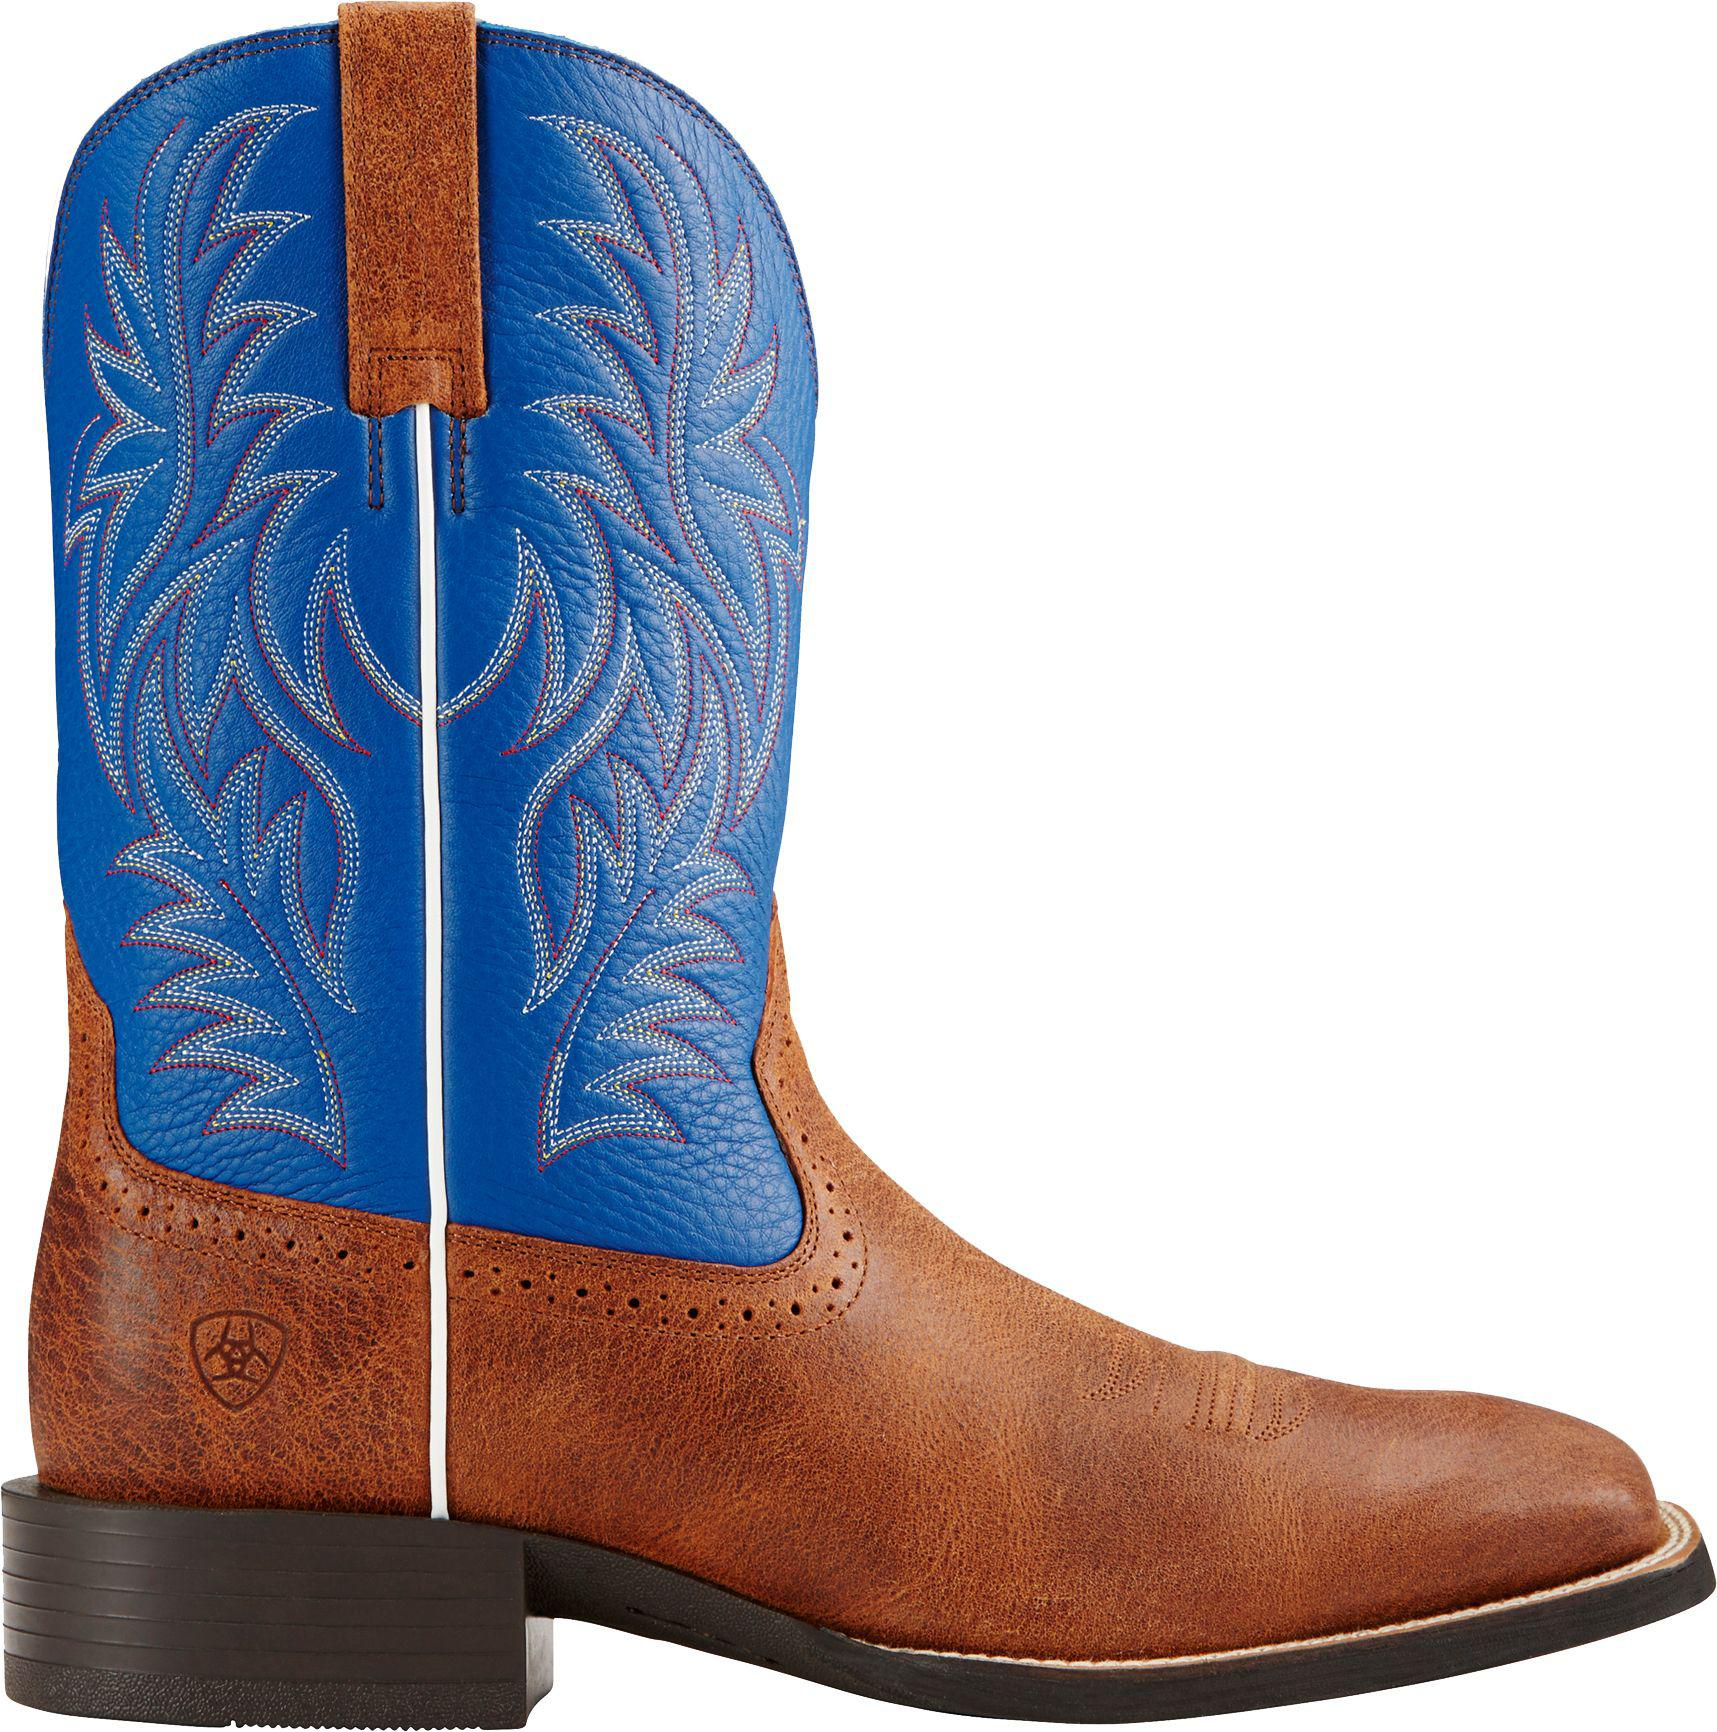 7a5884025a2 Ariat Brown Sport Rider Western Boots for men